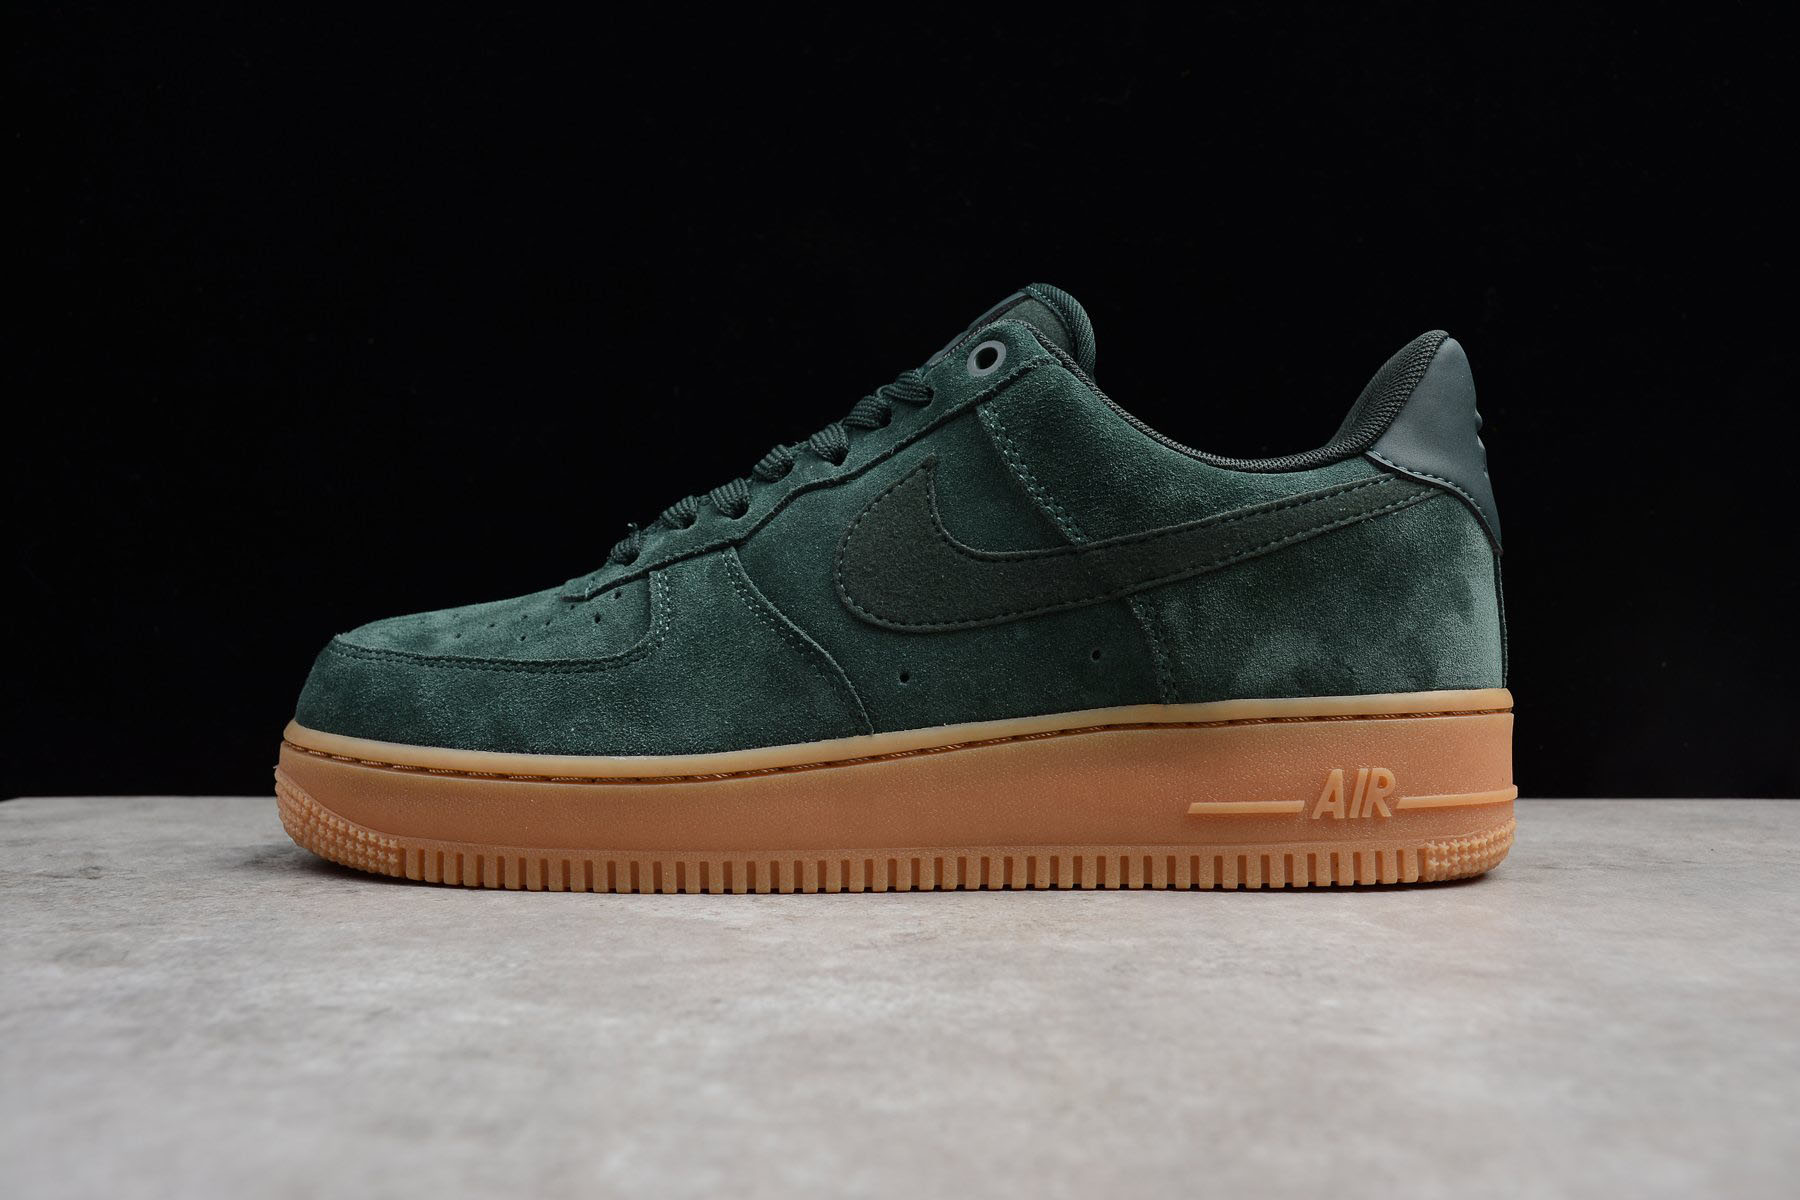 Mens and WMNS Nike Air Force 1 '07 LV8 Suede Outdoor Green AA1117-300